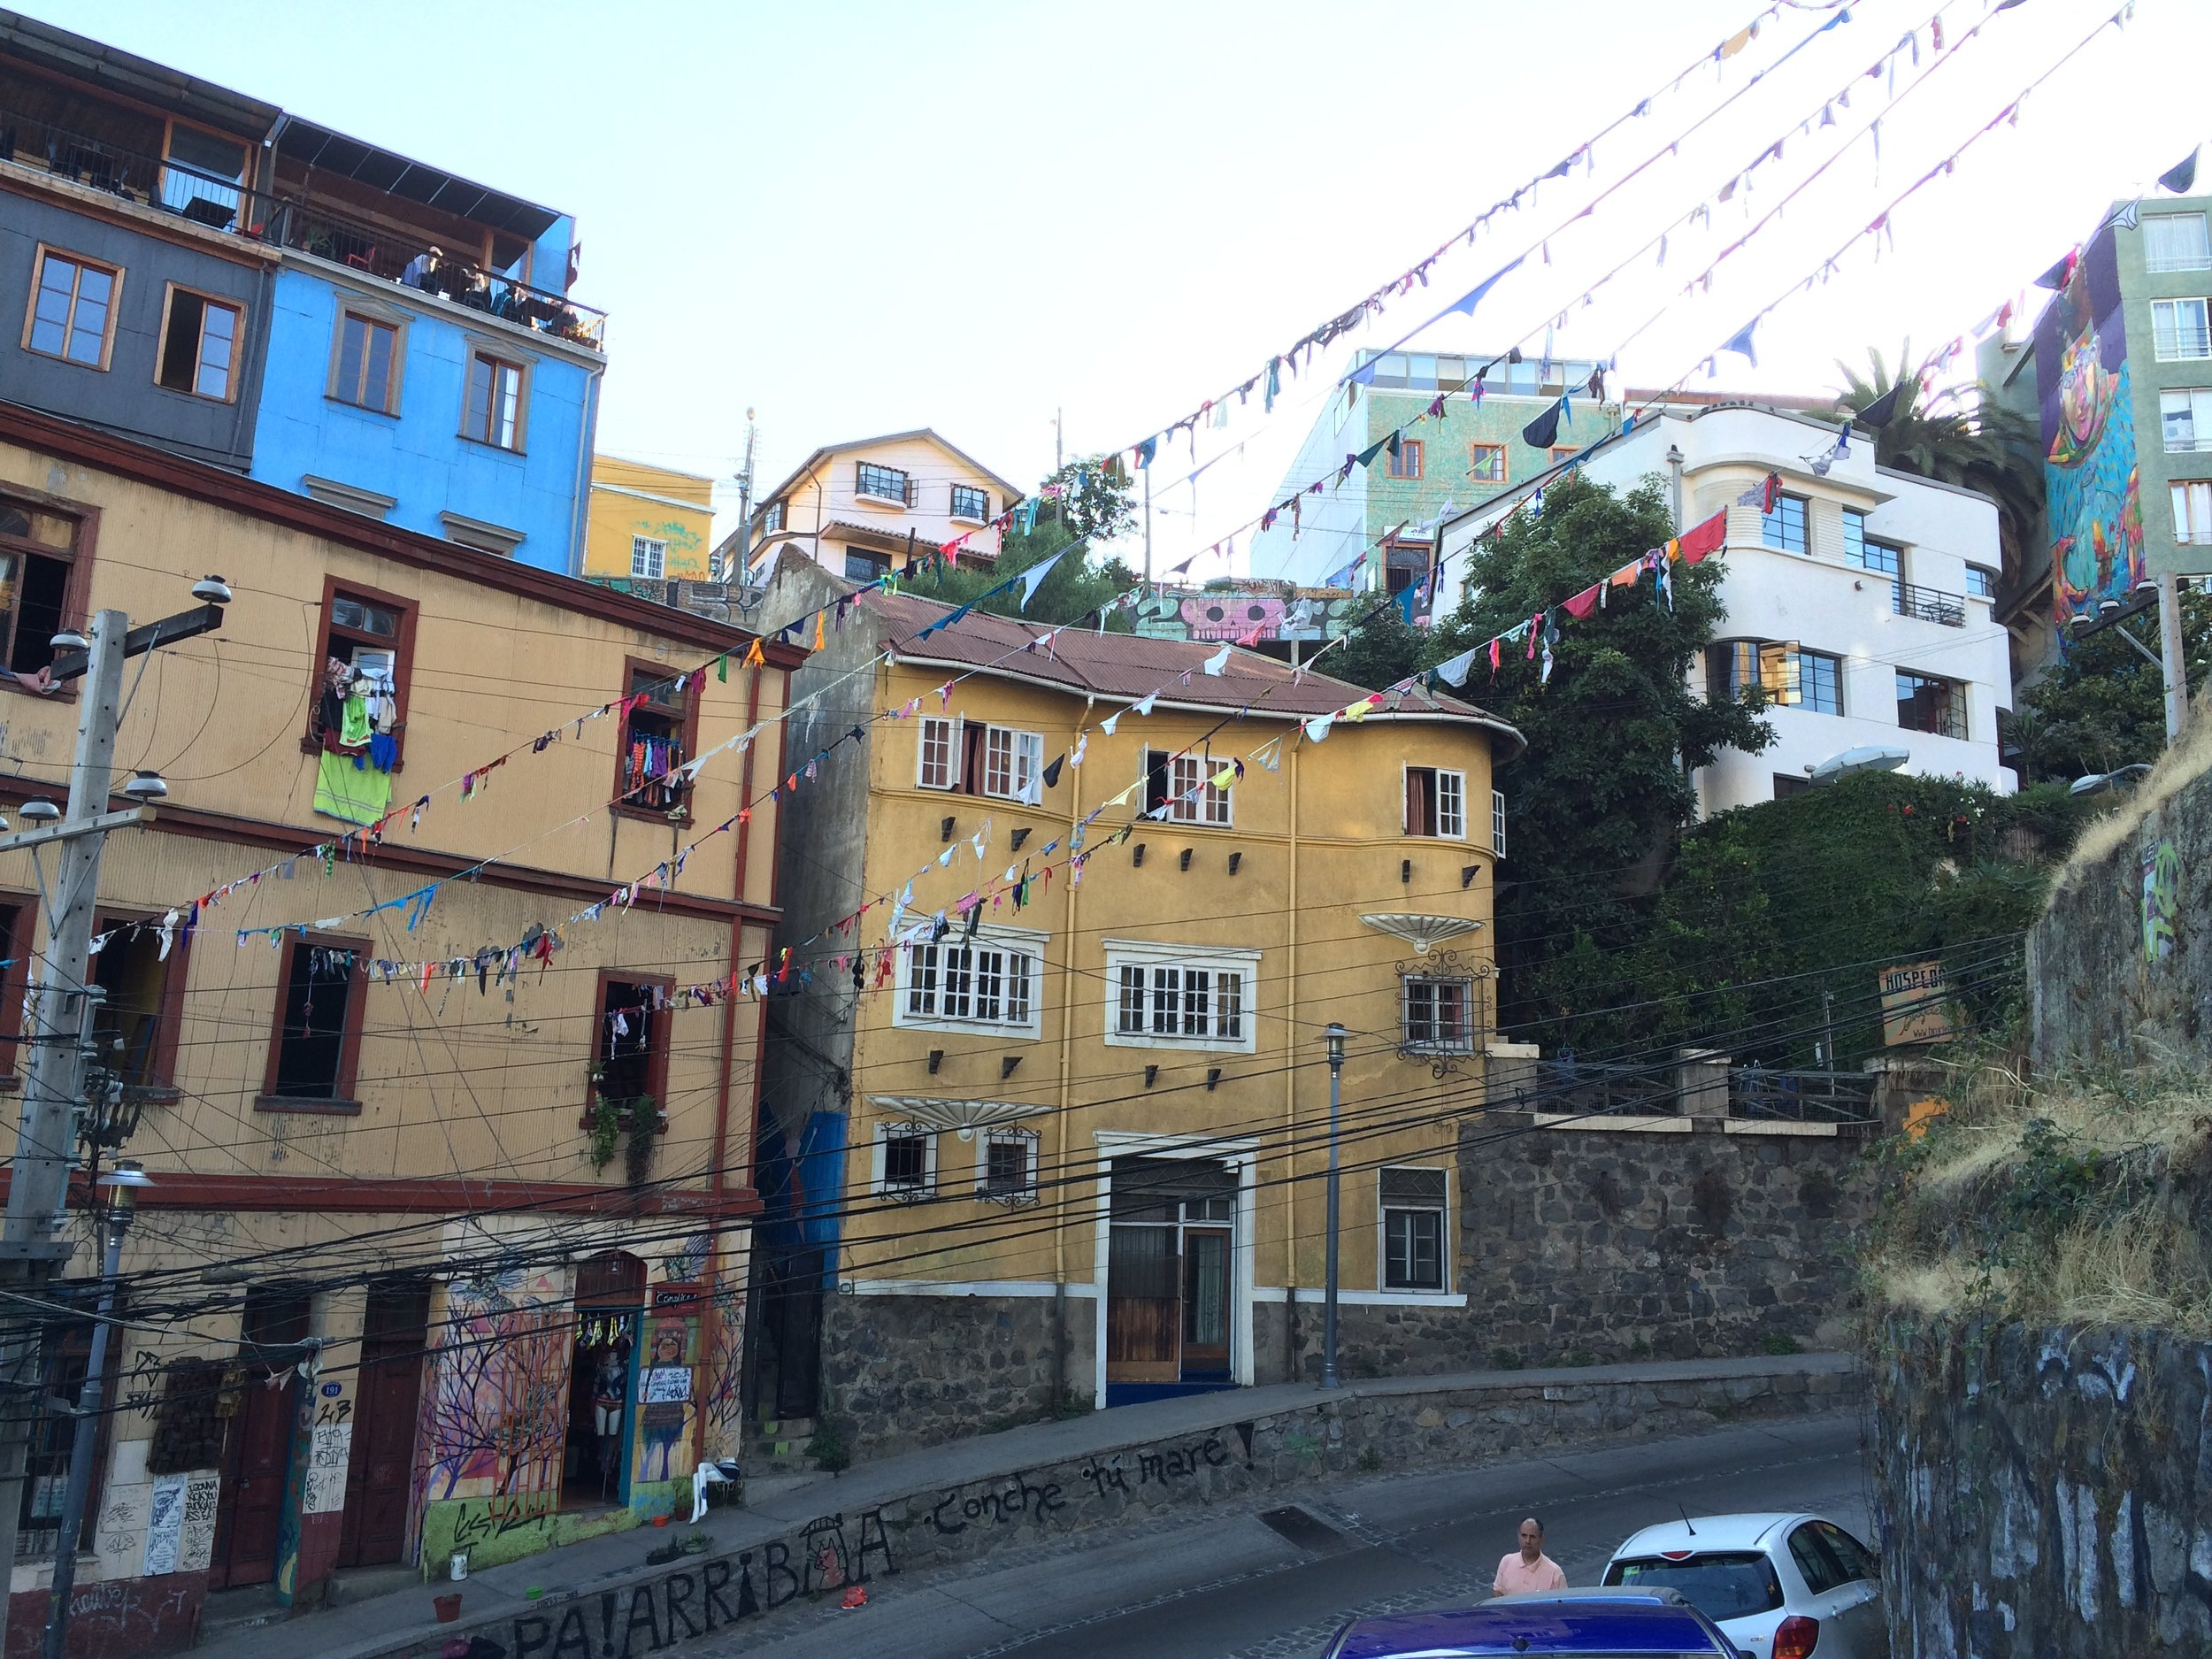 valparaiso-chile-flags-1.JPG